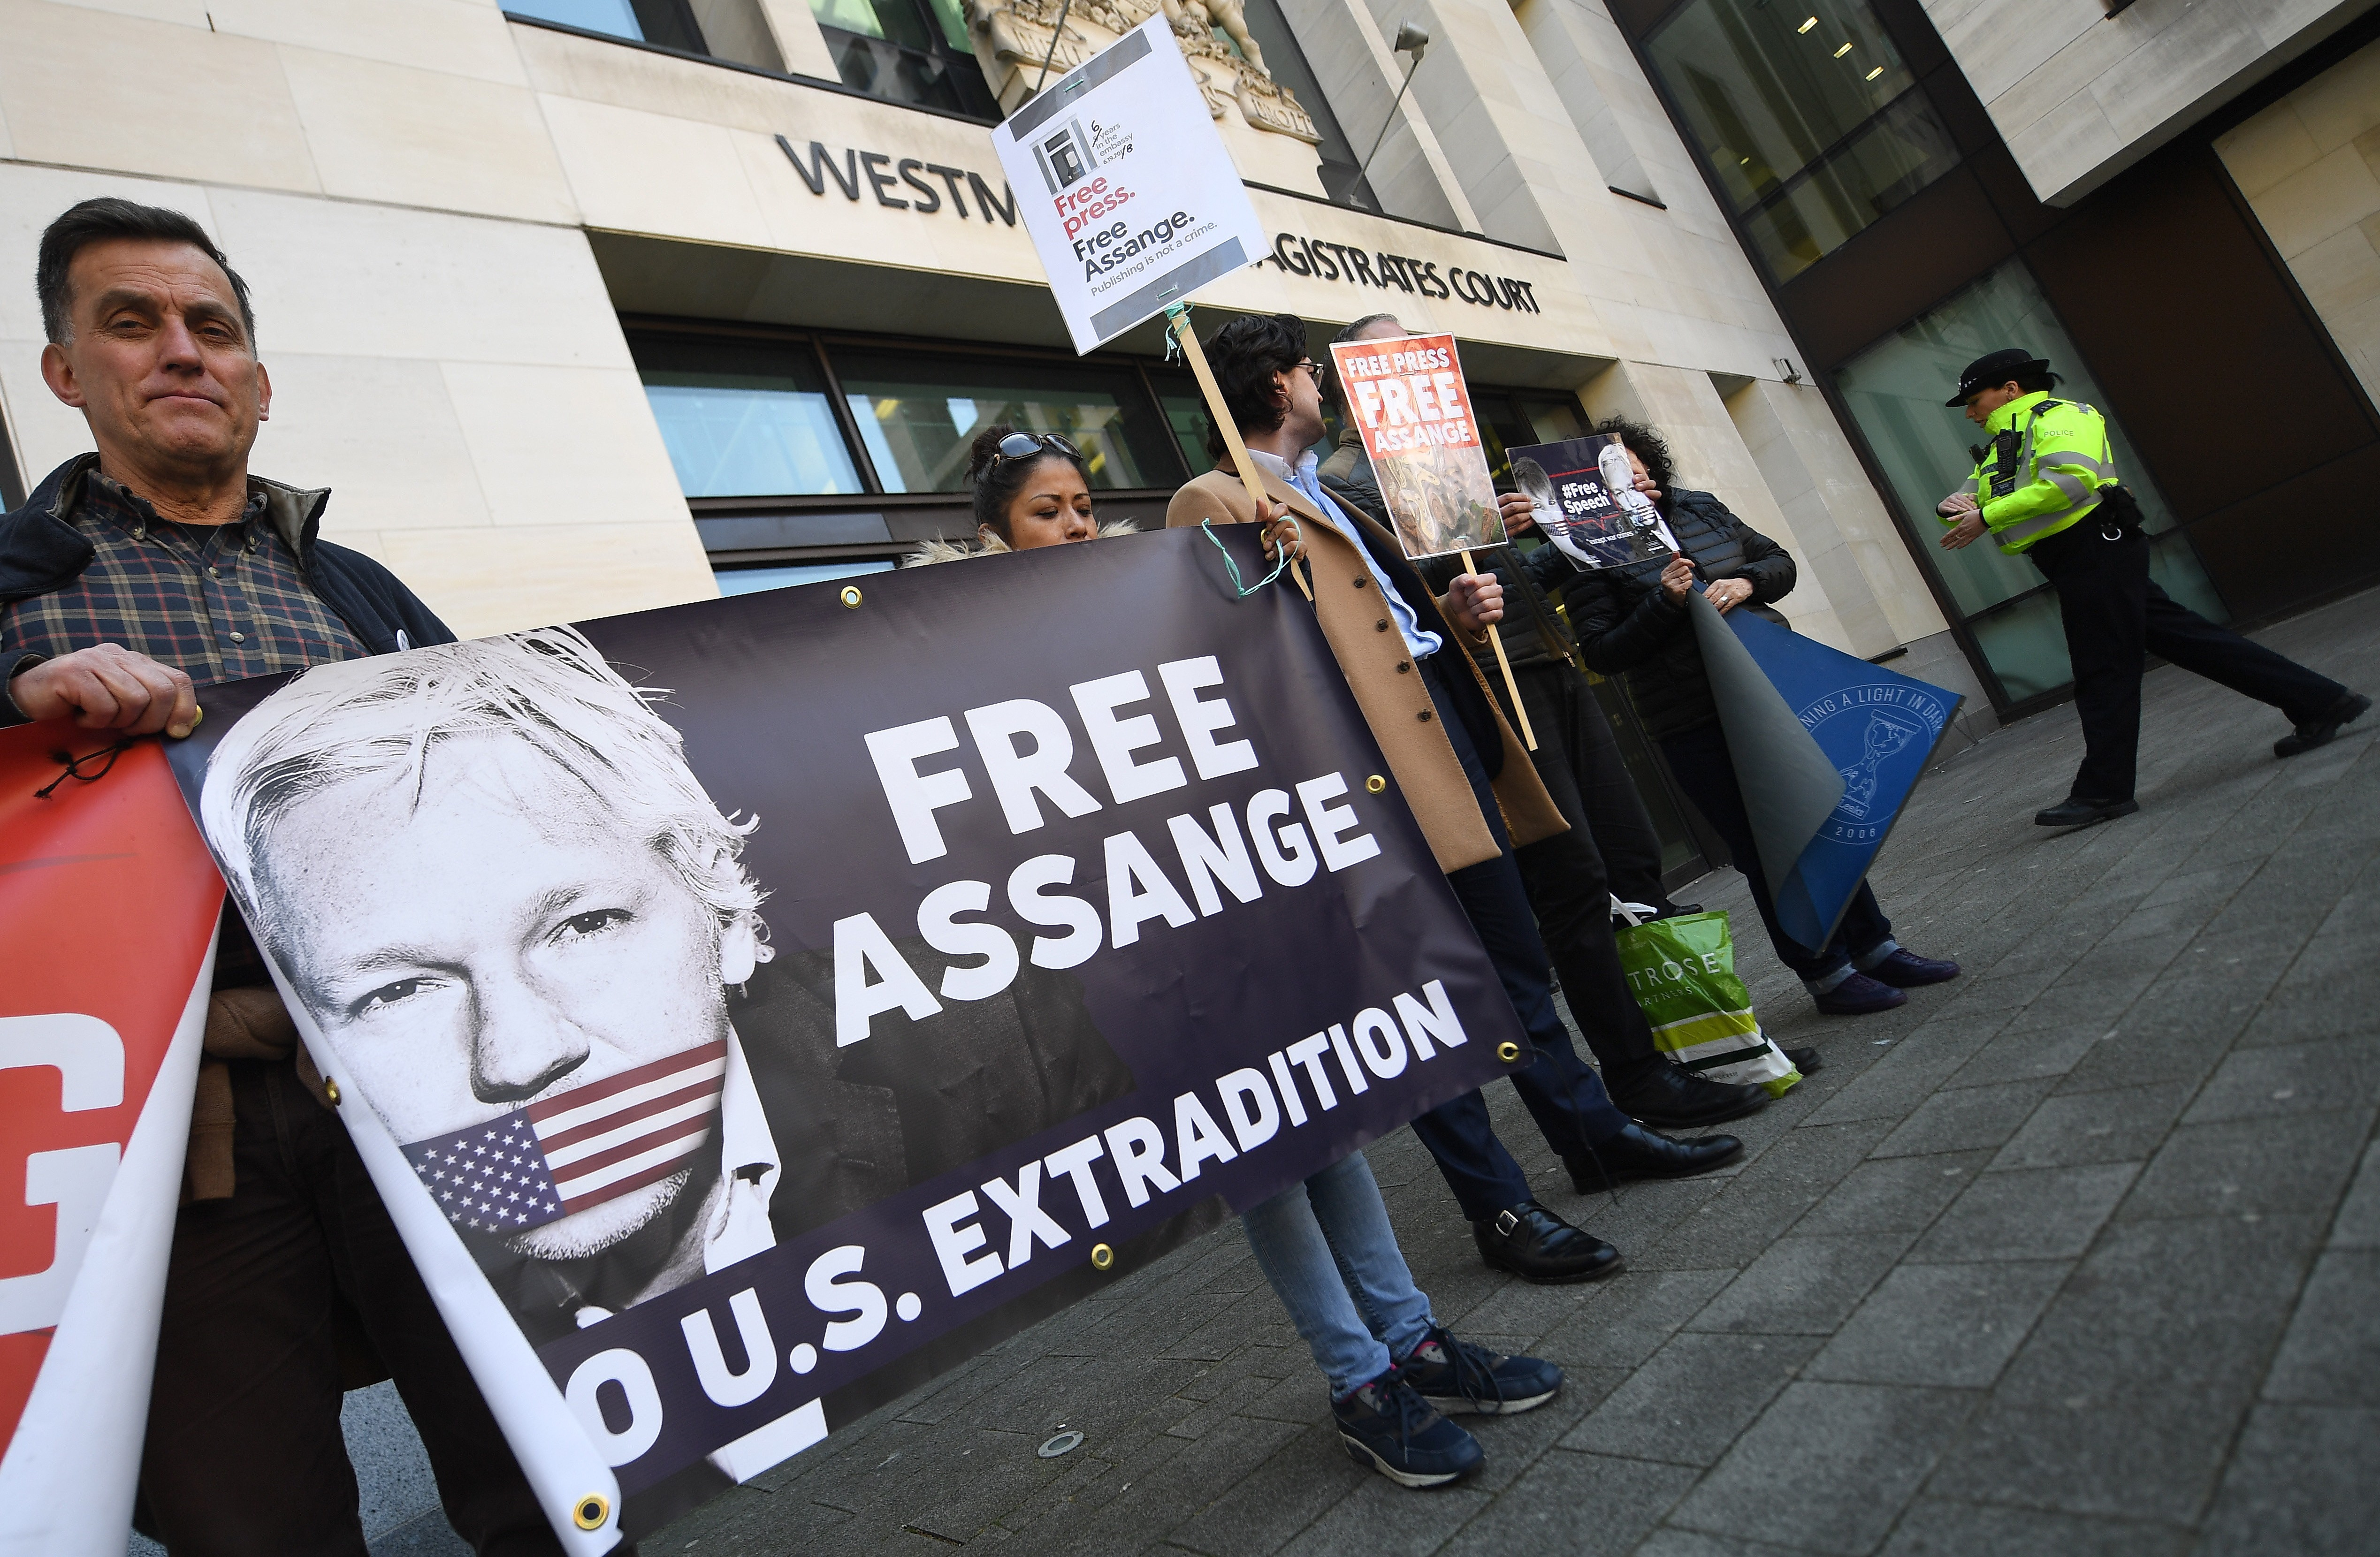 bd6624cba36 Is arrested WikiLeaks founder Julian Assange a transparency icon or an  enemy of the state